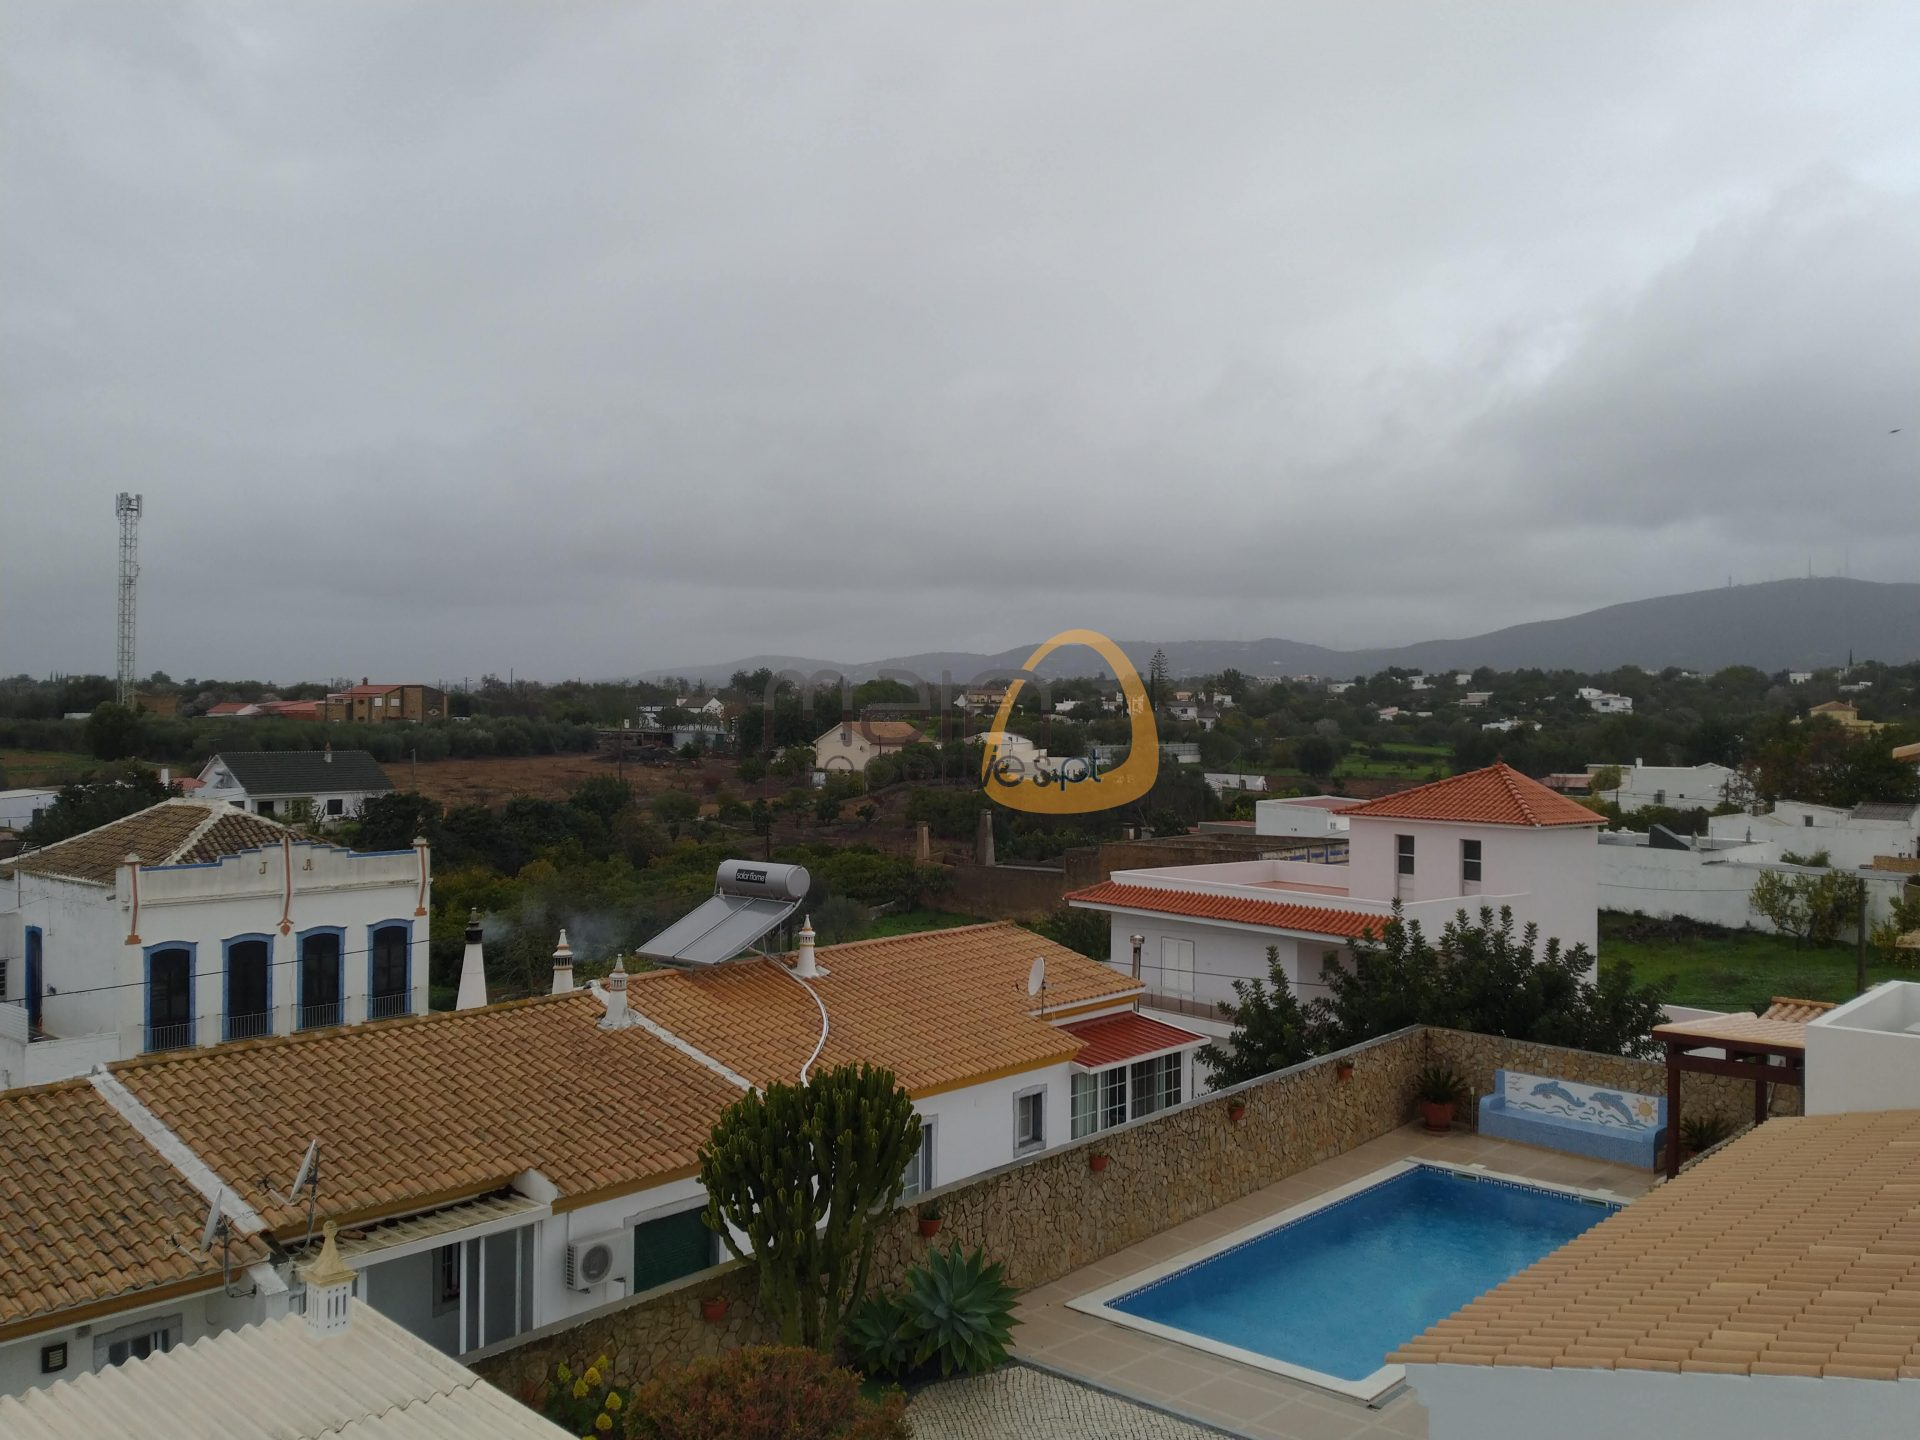 Villa with 5 bedrooms + office with open views in Quelfes – Olhão